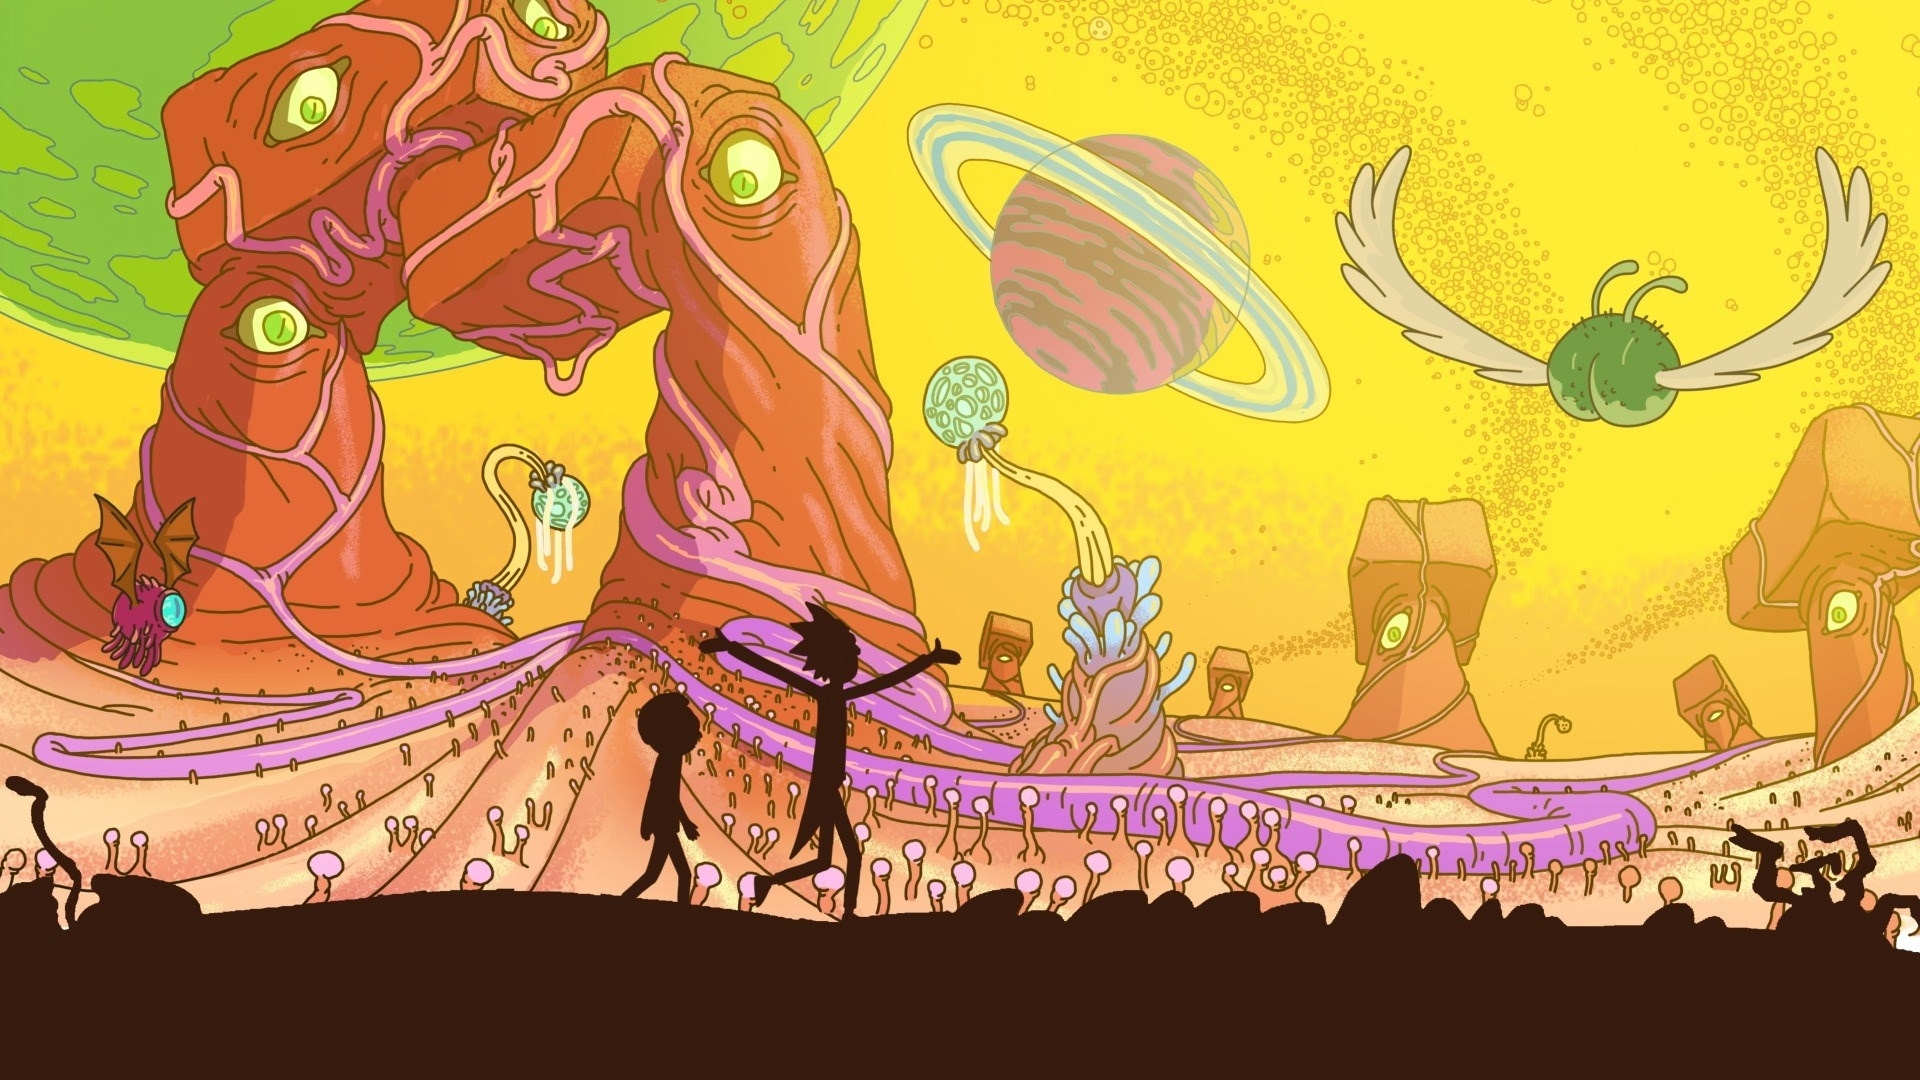 2017-03-14 - free screensaver wallpapers for rick and morty